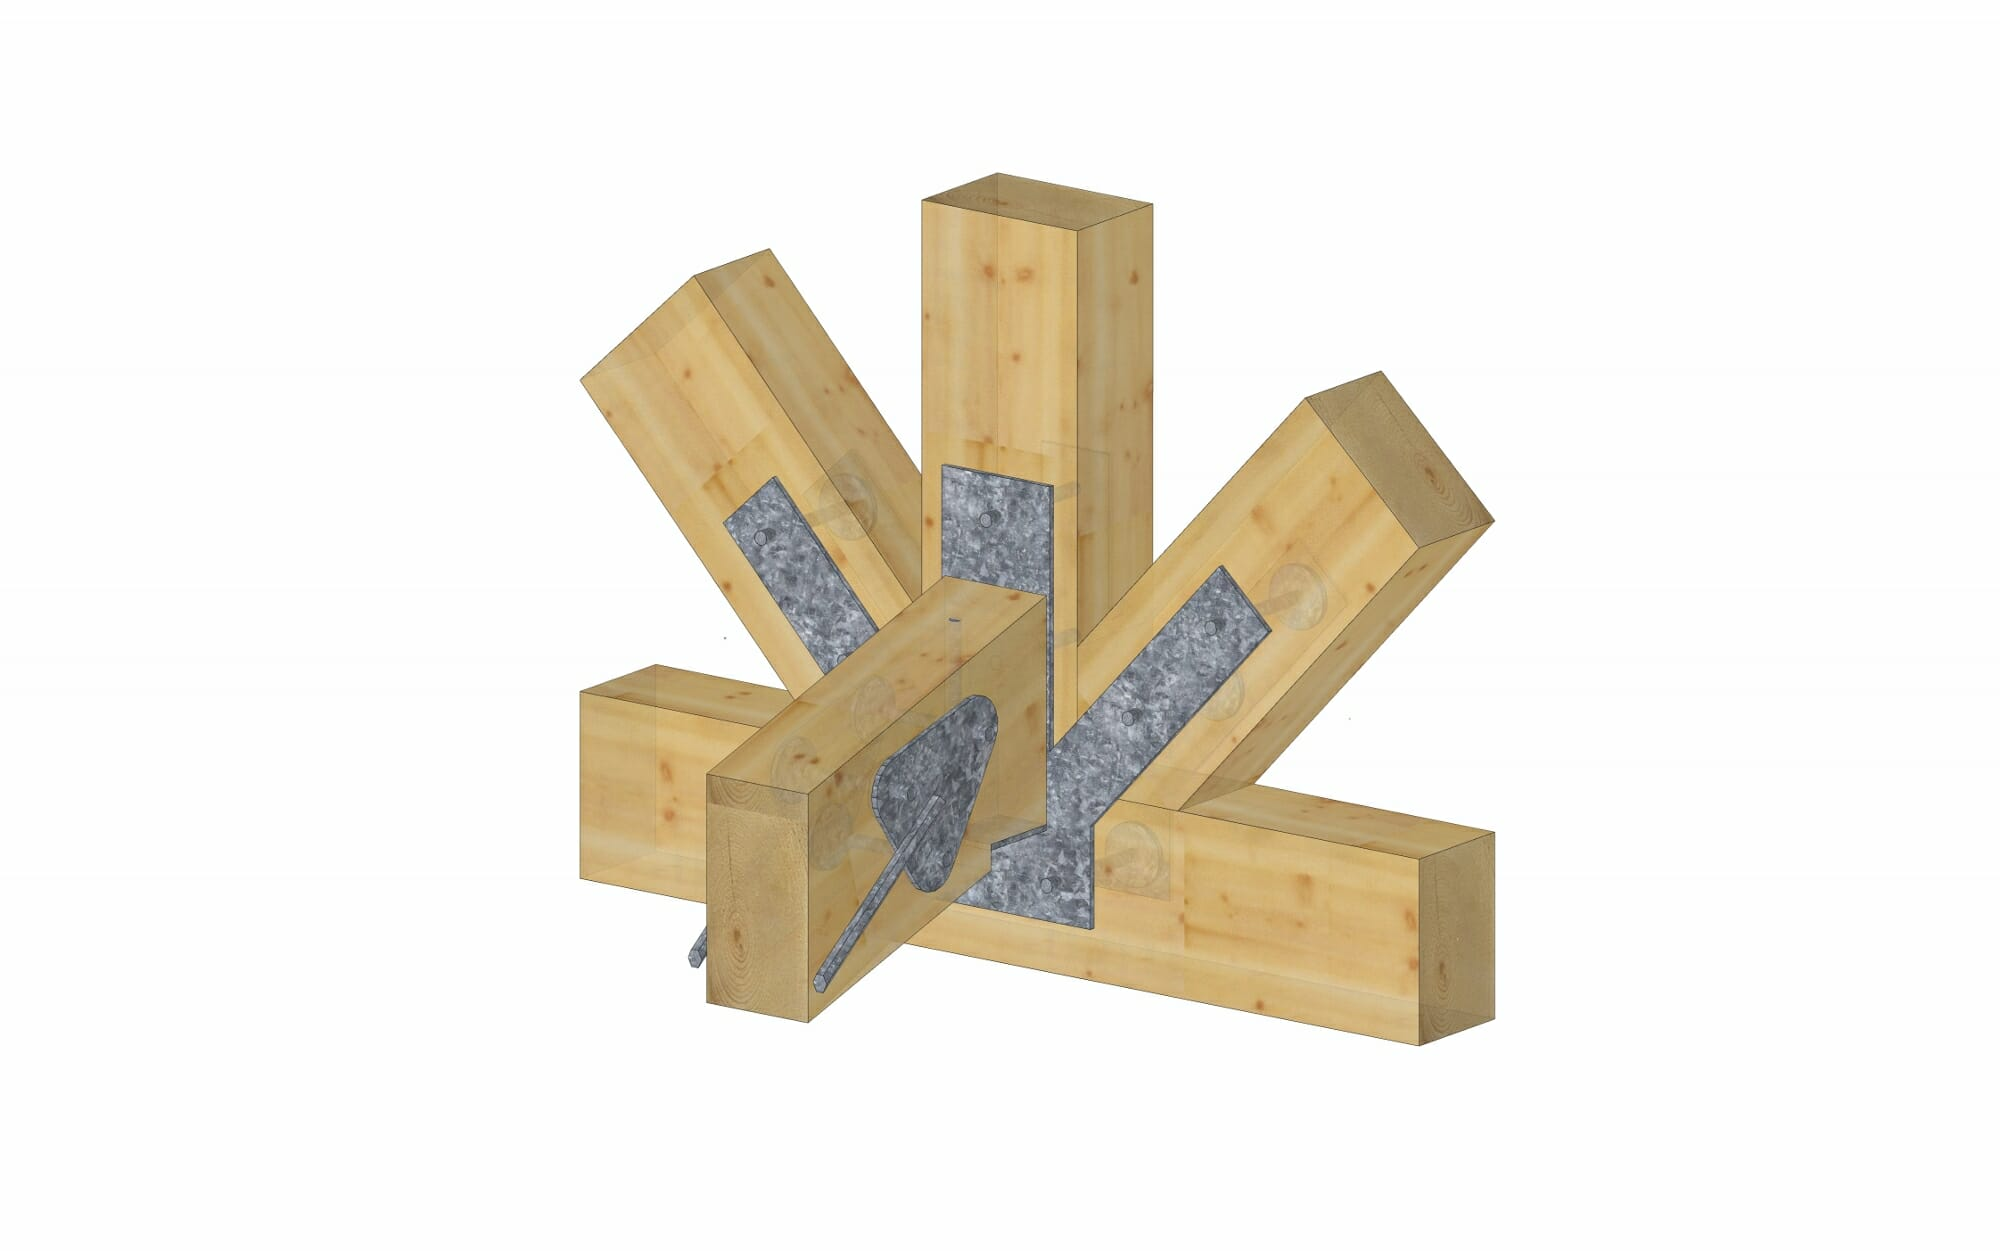 Steel Connections for Timber Frames